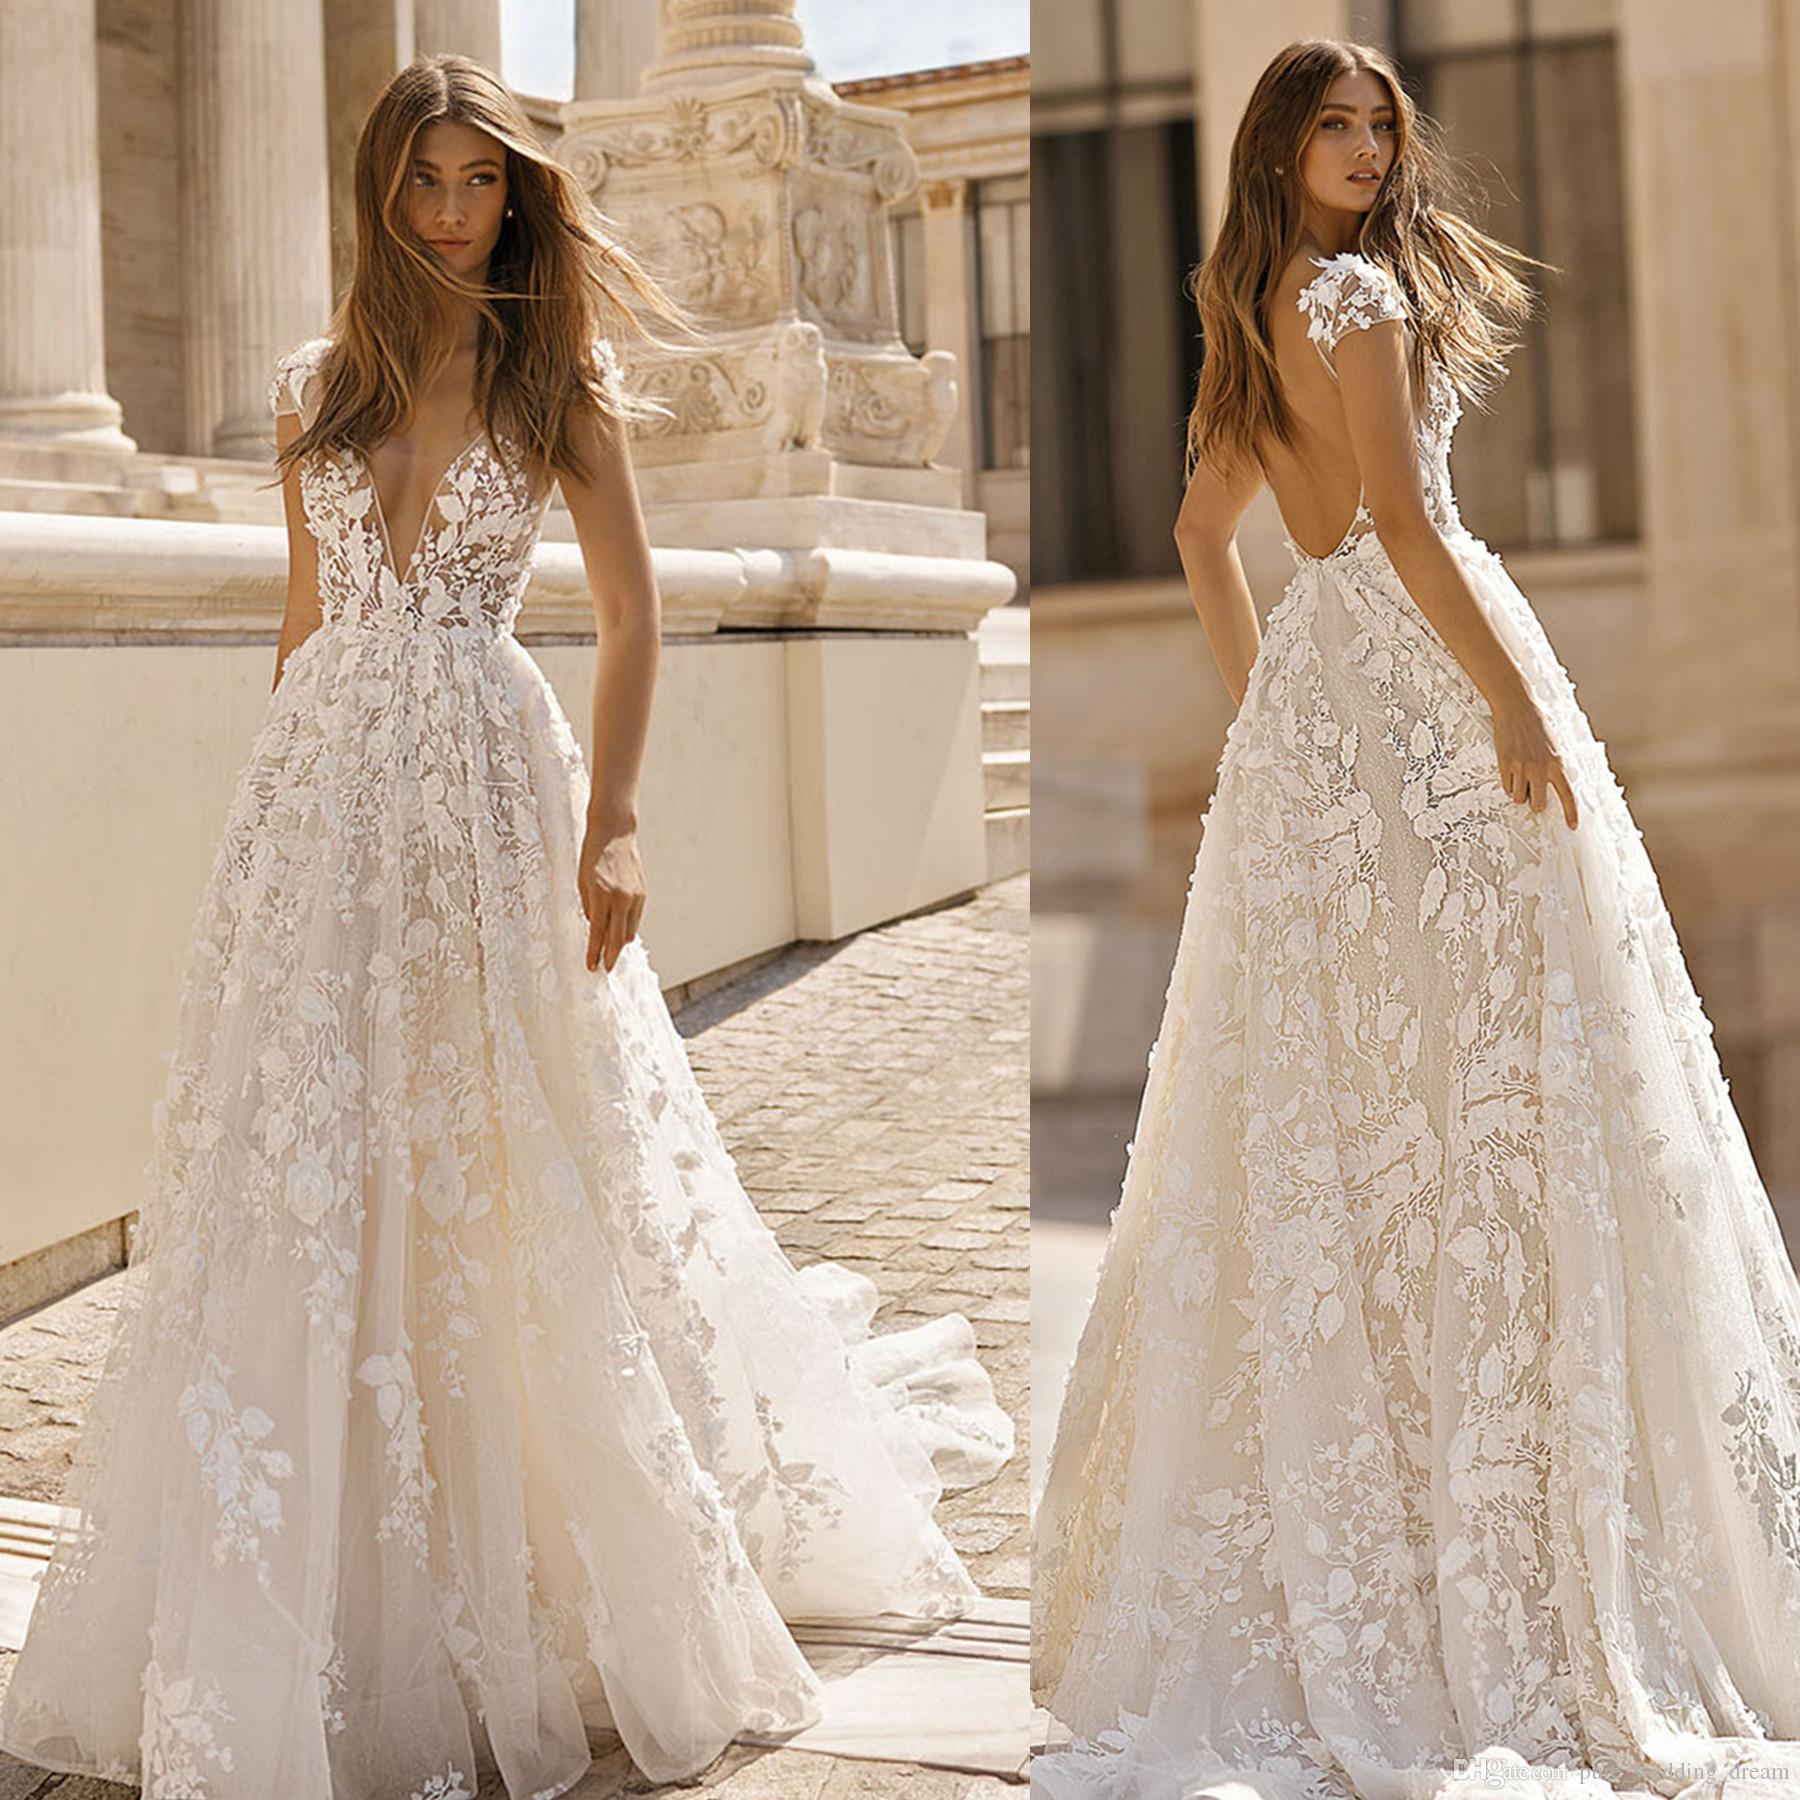 935696c885c Discount 2019 Chic Simple 3D Flowers V Neck Beach Wedding Dresses Illusion  Bodice Backless Beach Bridal Gowns Sweep Train A16 Classic Wedding Dresses  Dress ...